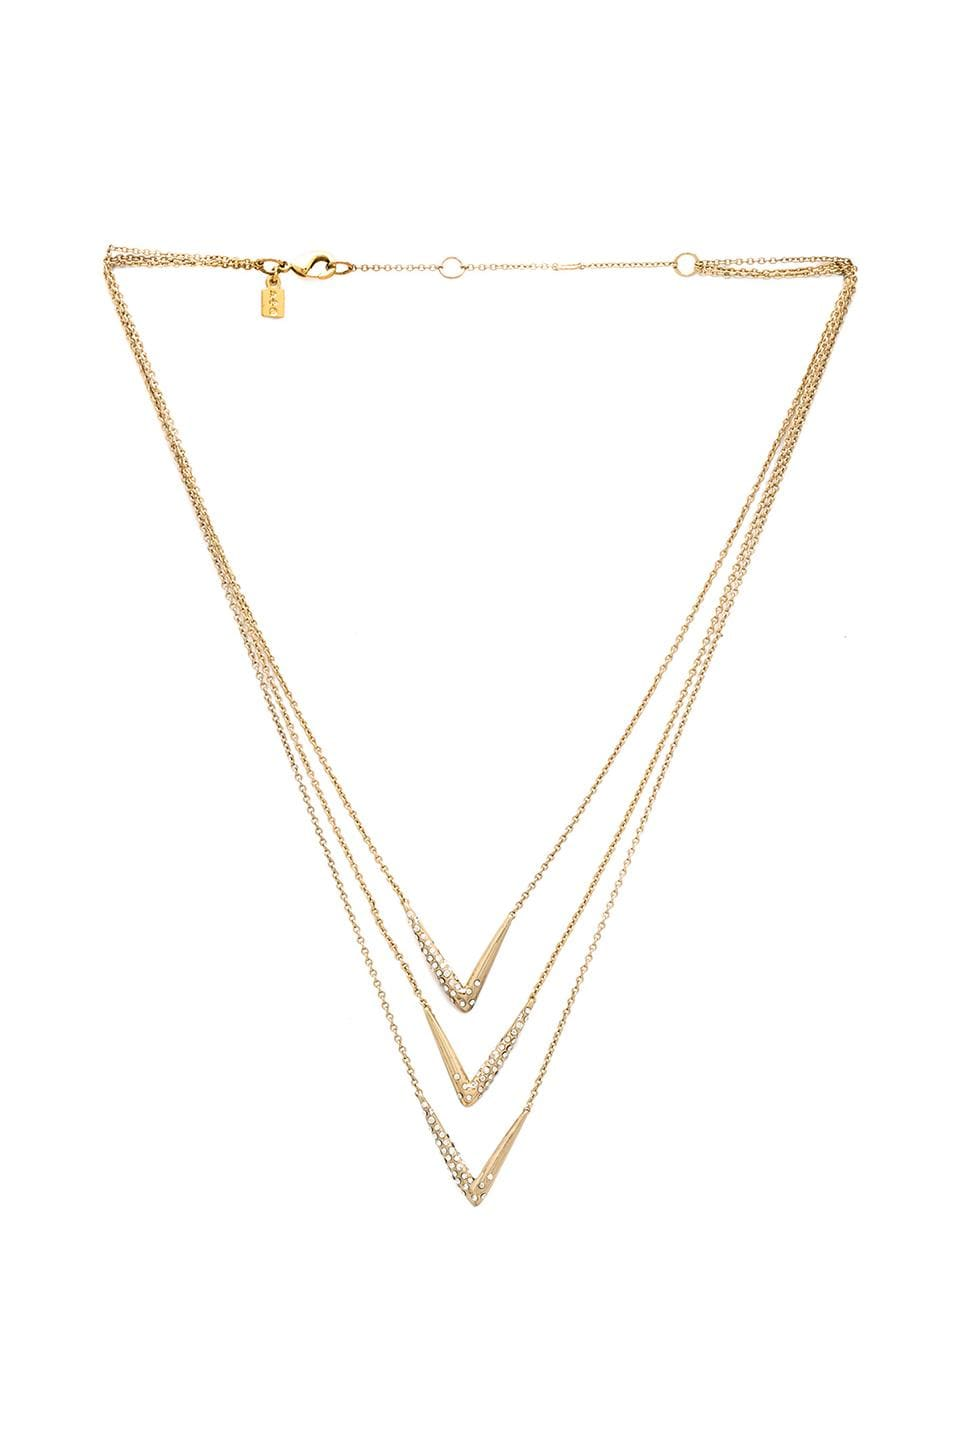 Alexis Bittar Encrusted Chevron Necklace in Gold